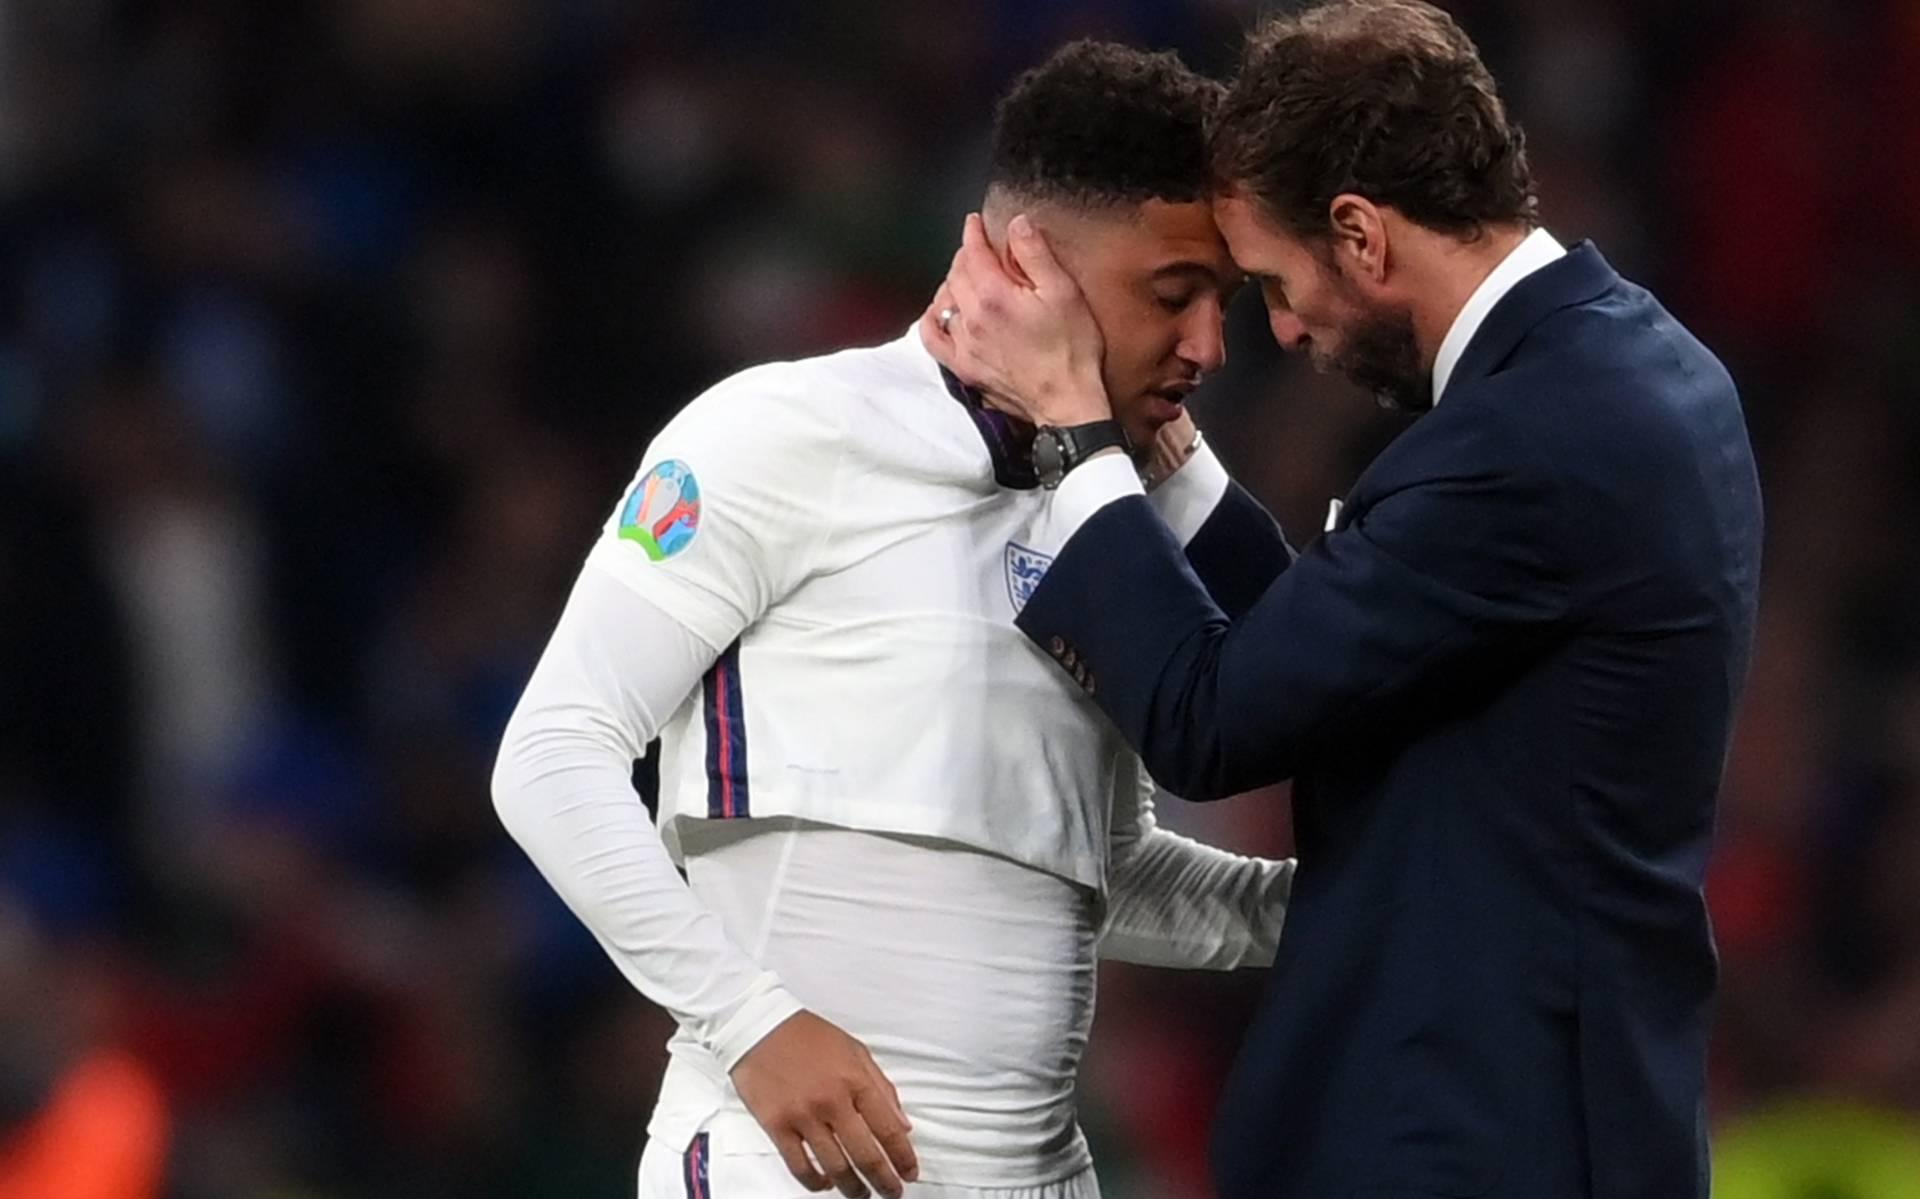 Eleven arrests for racism after England penalty drama